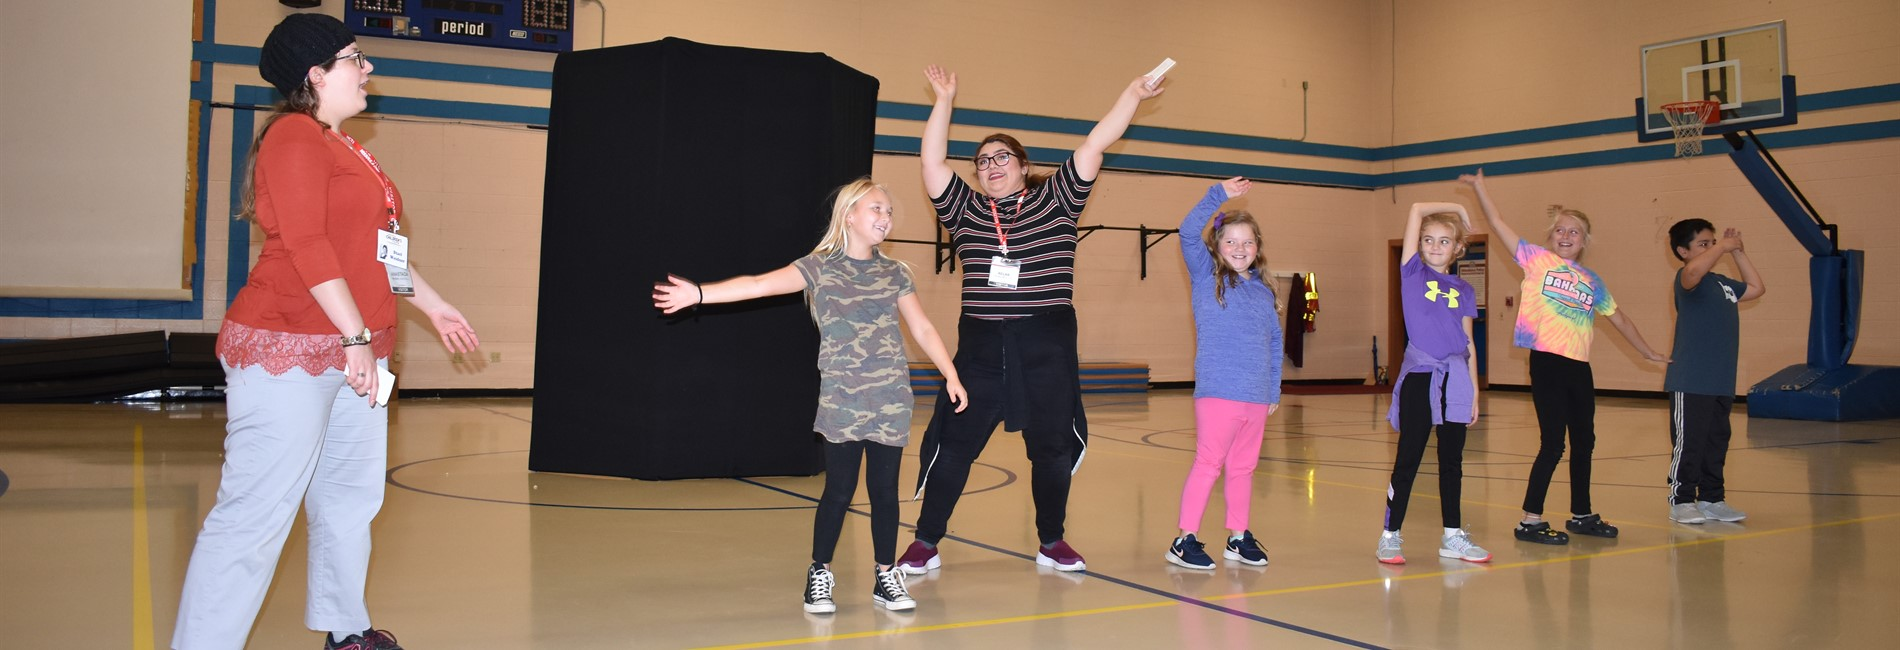 "The Missoula Children's Theatre tour team conducted a workshop entitled ""The History of Comedy"" at AES."